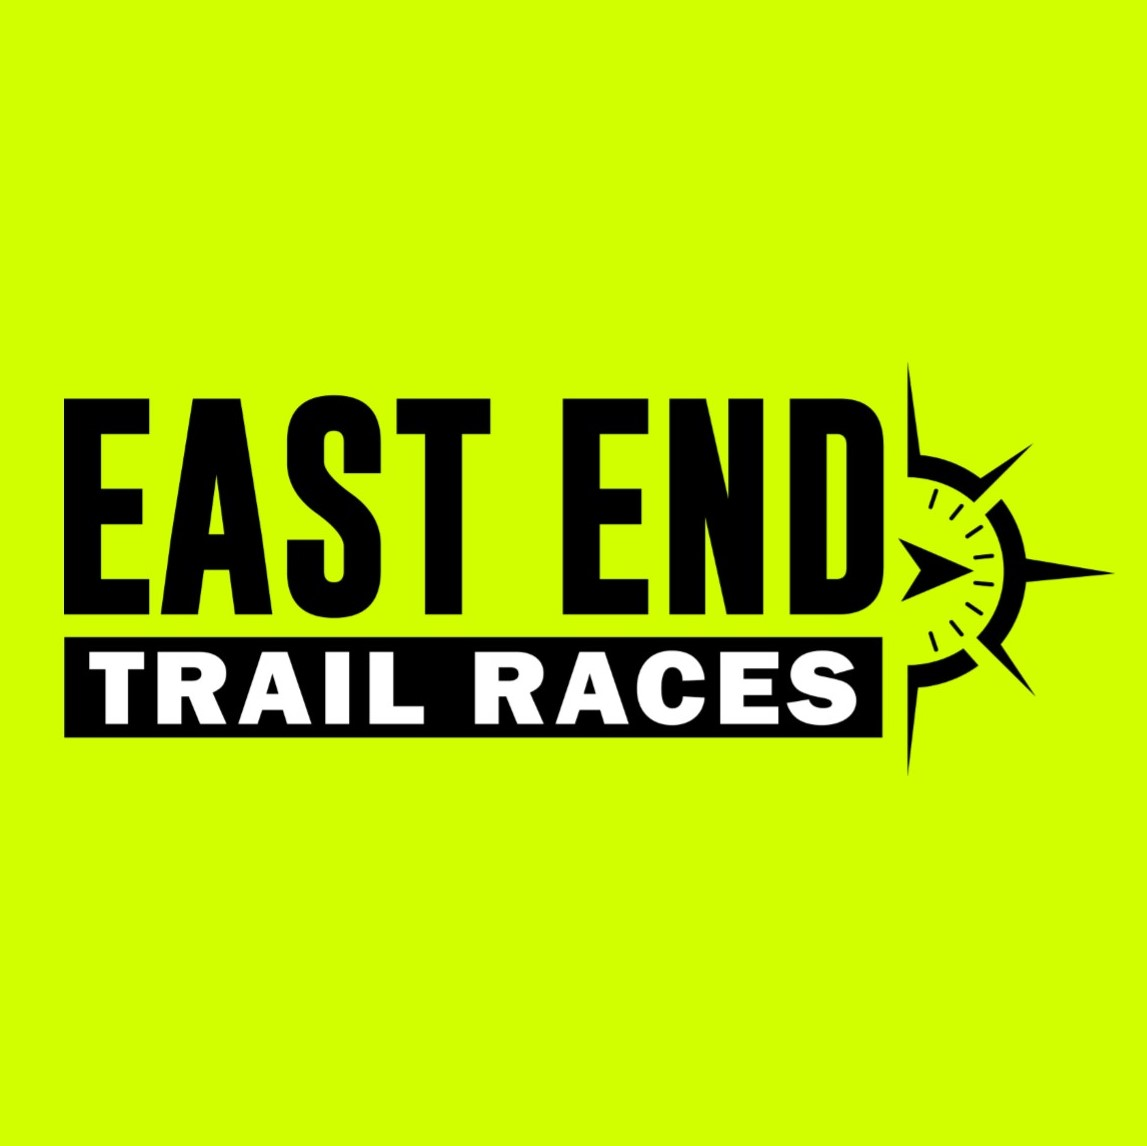 East End Trail Races The Carin MacLean Foundation 5K is a Running race in North Easton, Massachusetts consisting of a 5K.